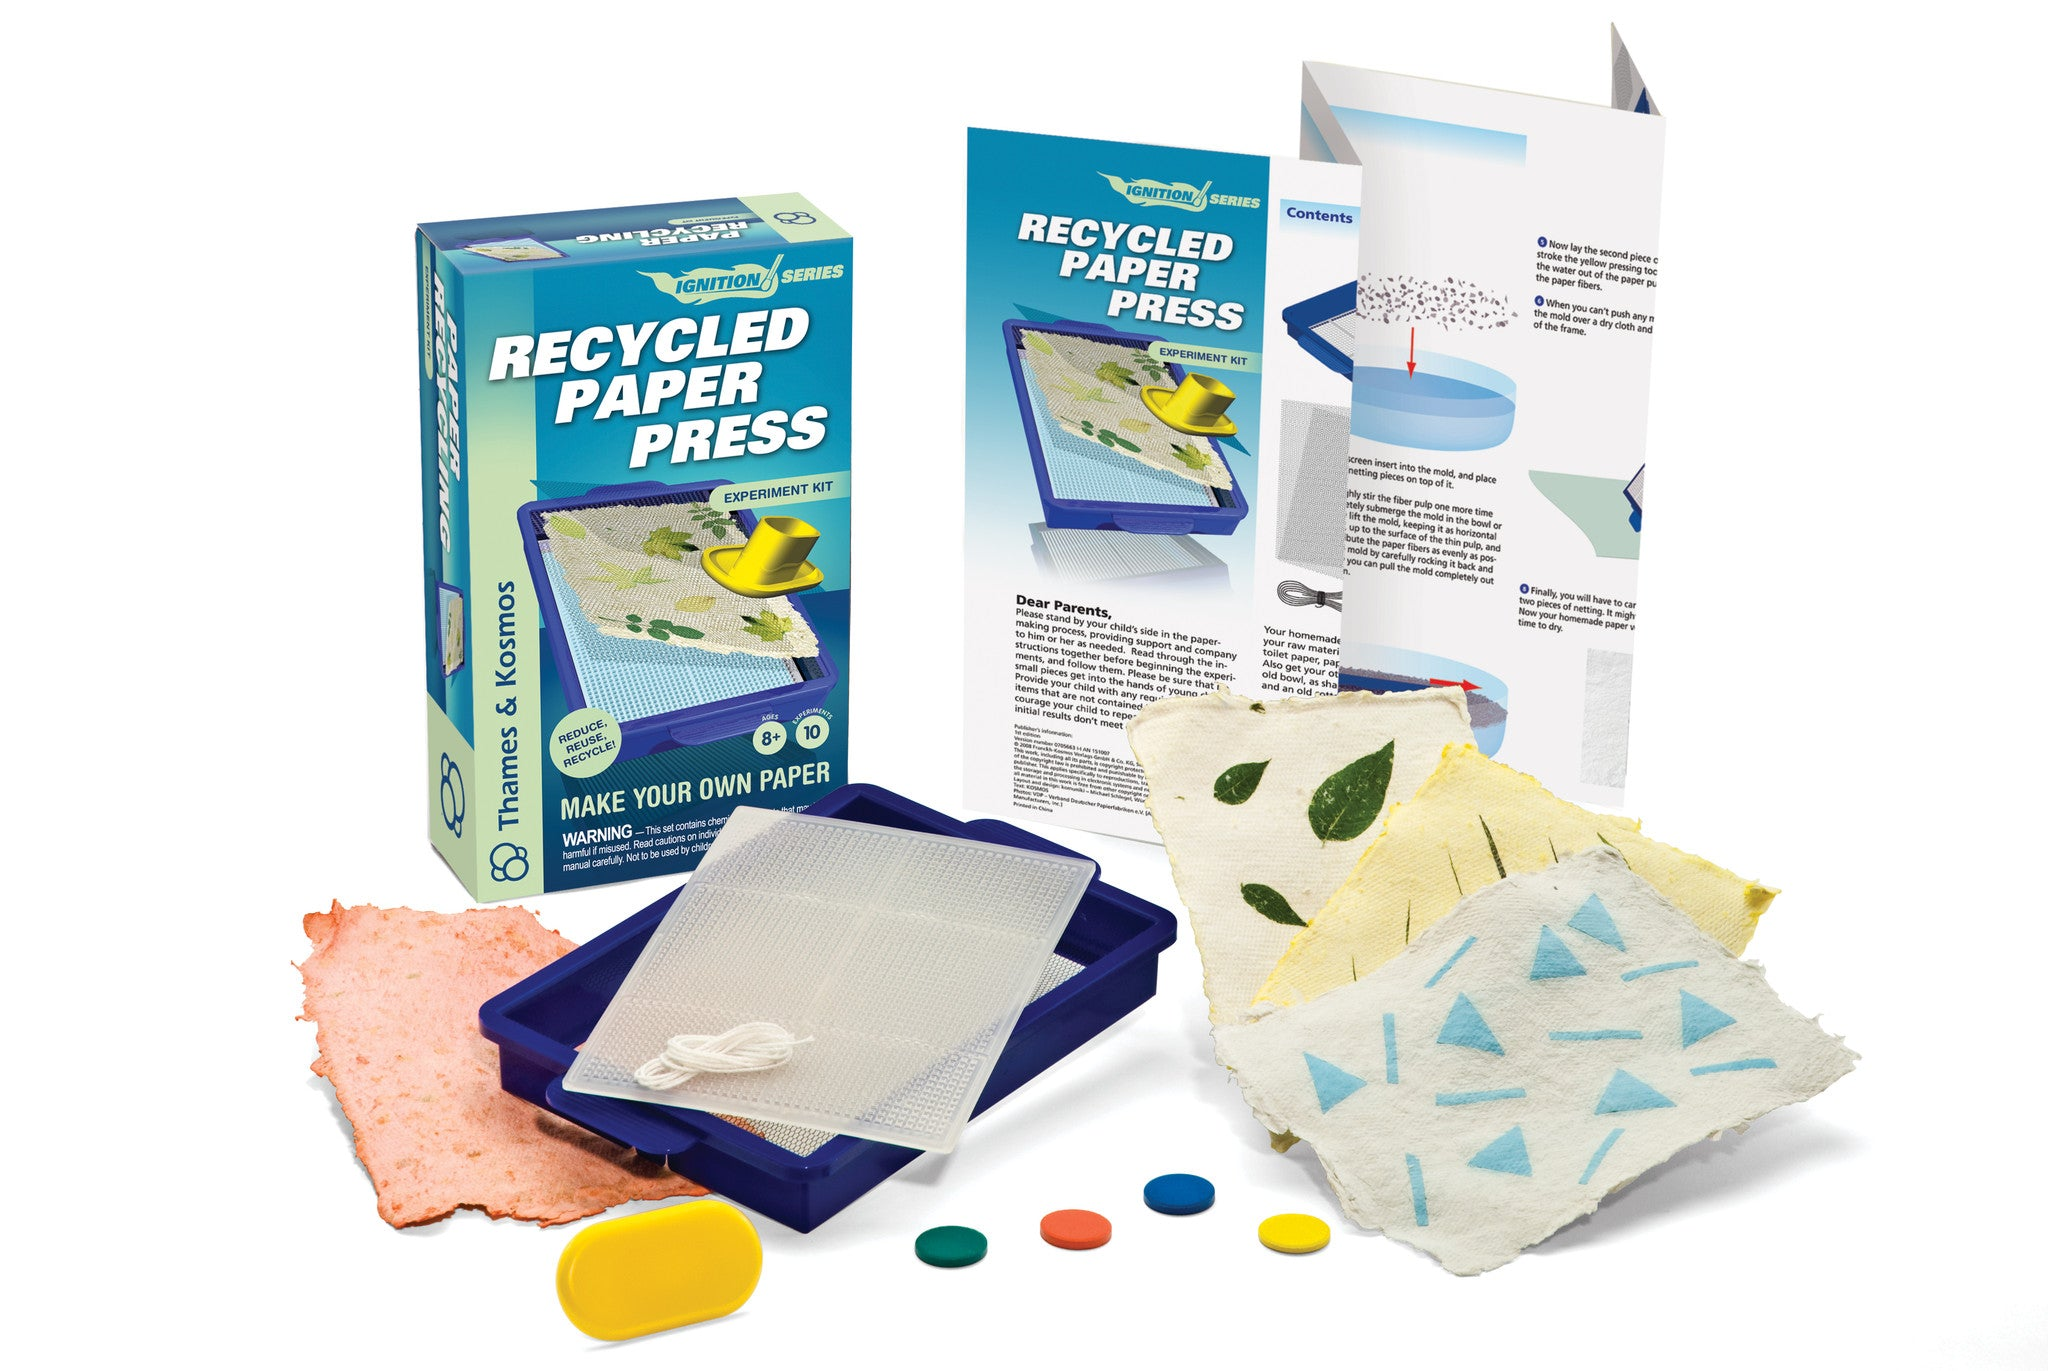 Thames & Kosmos Recycled Paper Press 659066